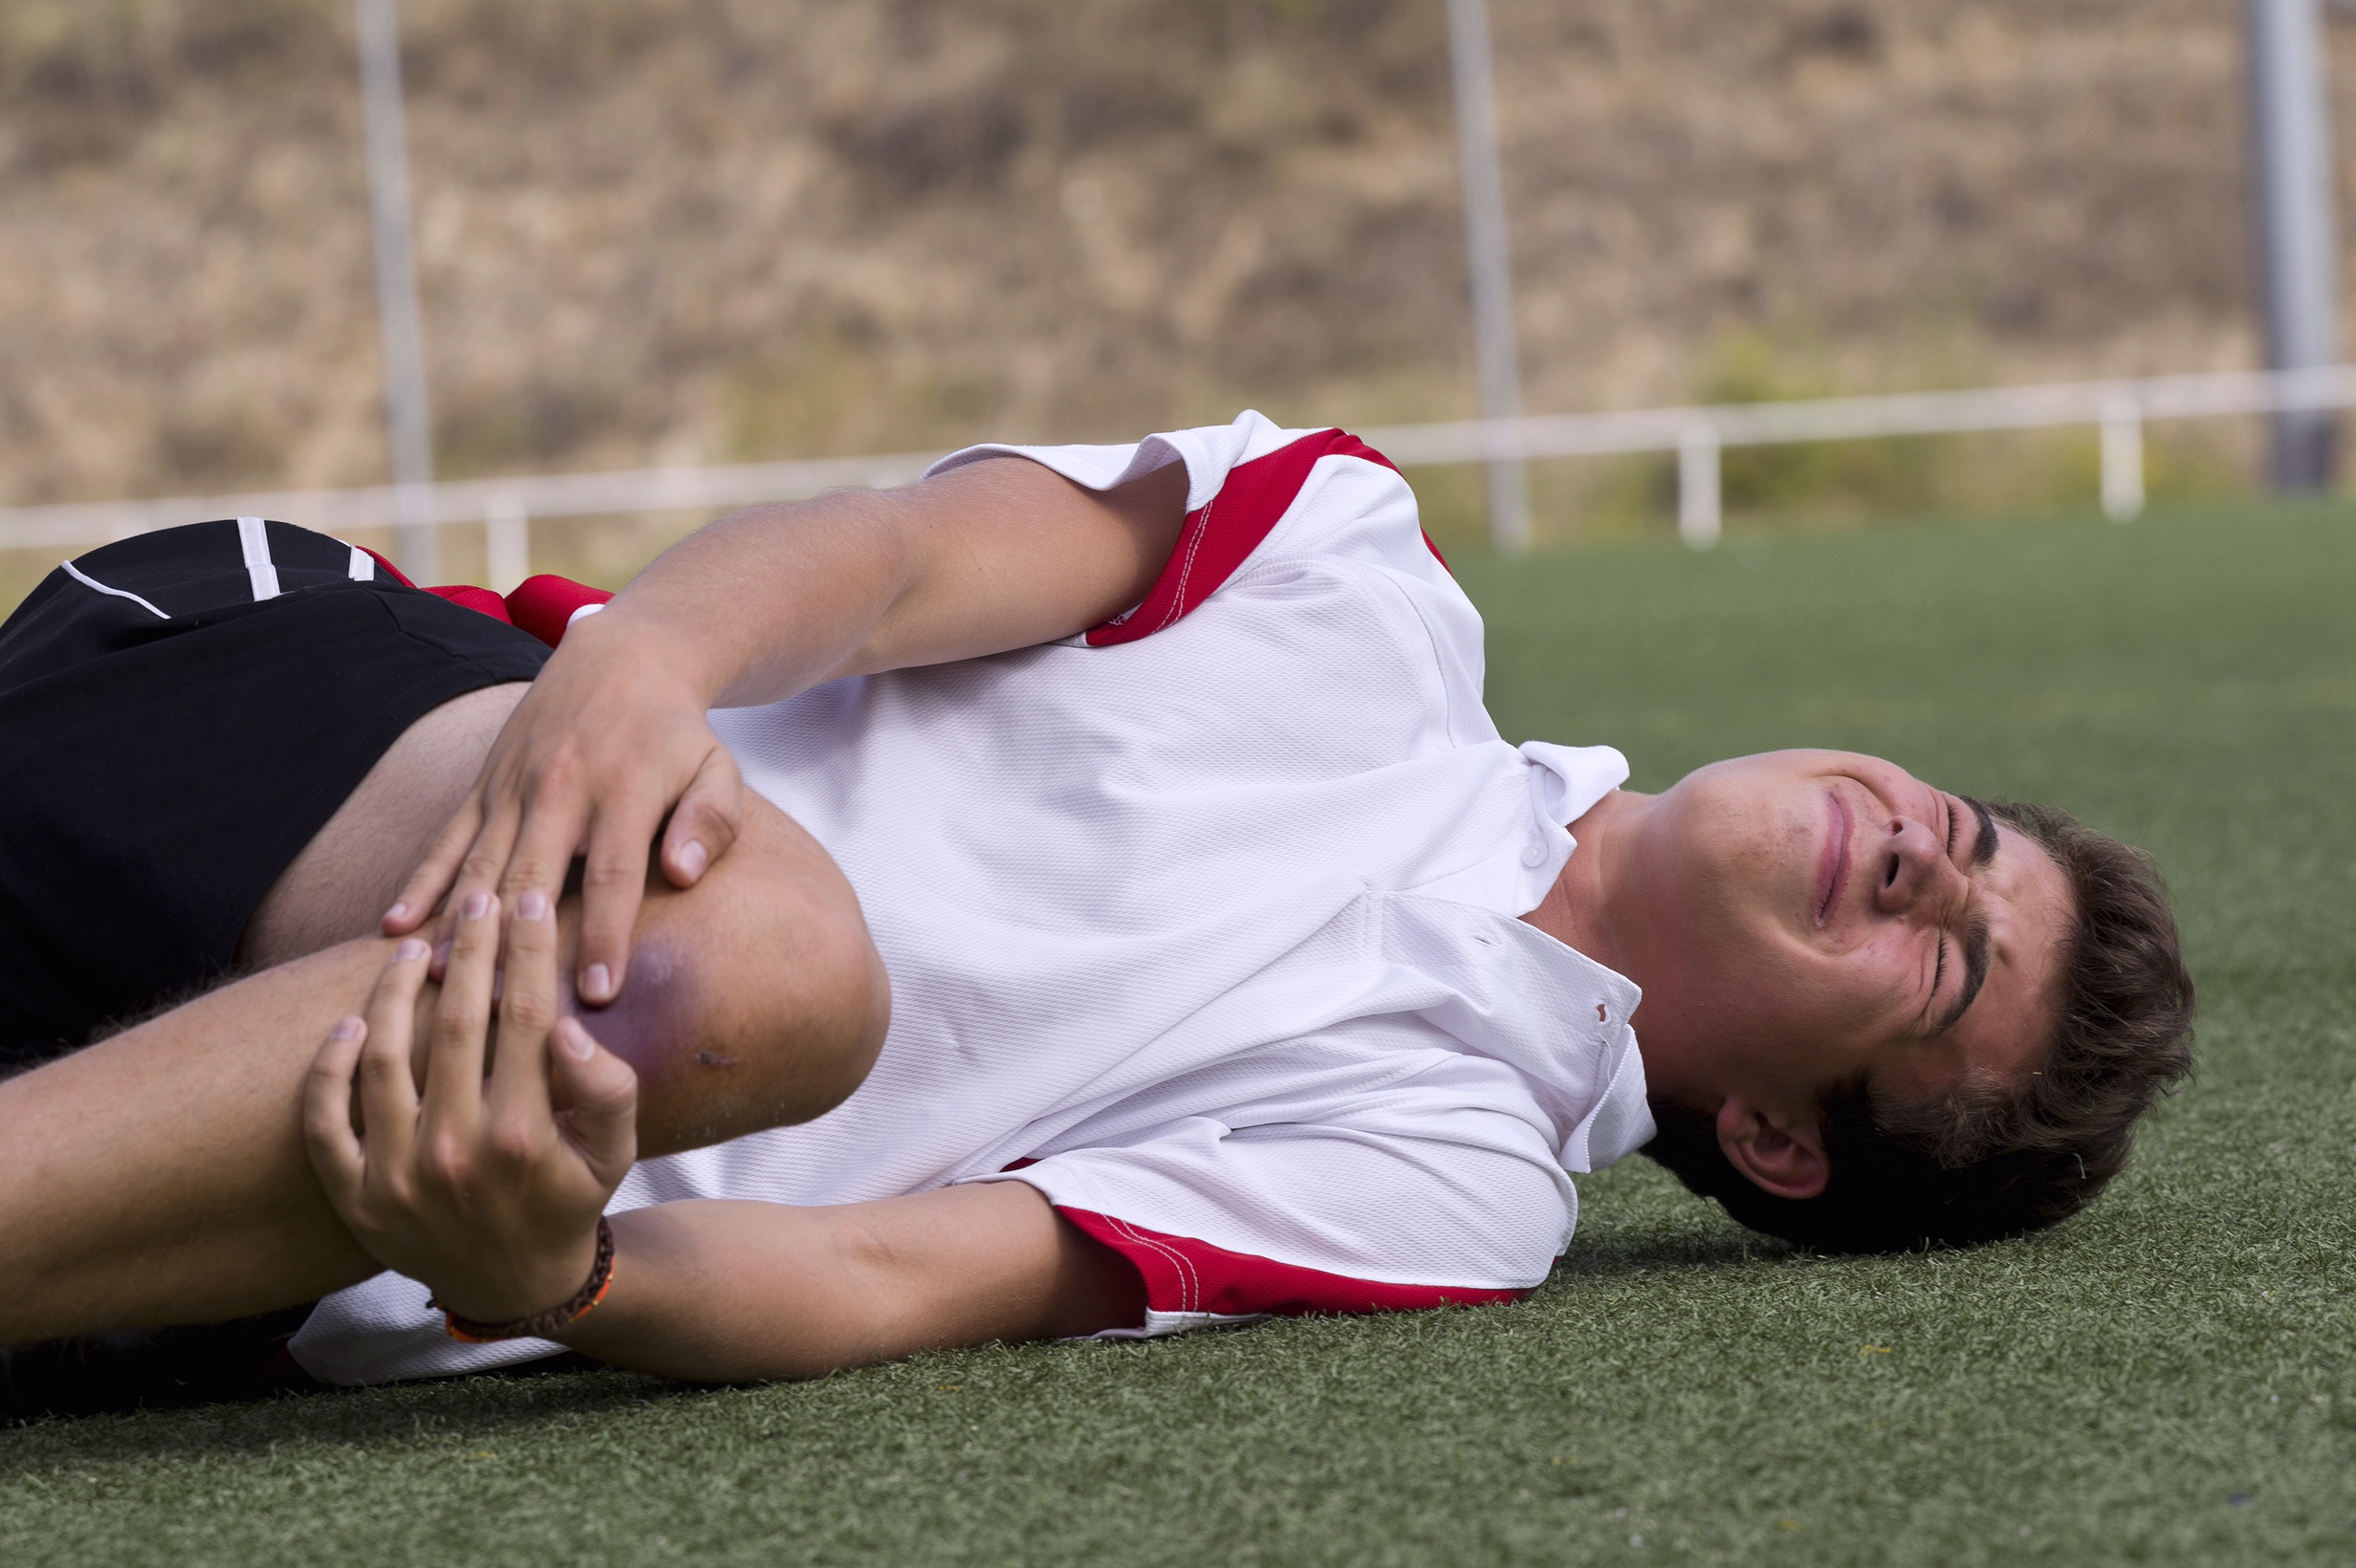 Young athlete with knee injury